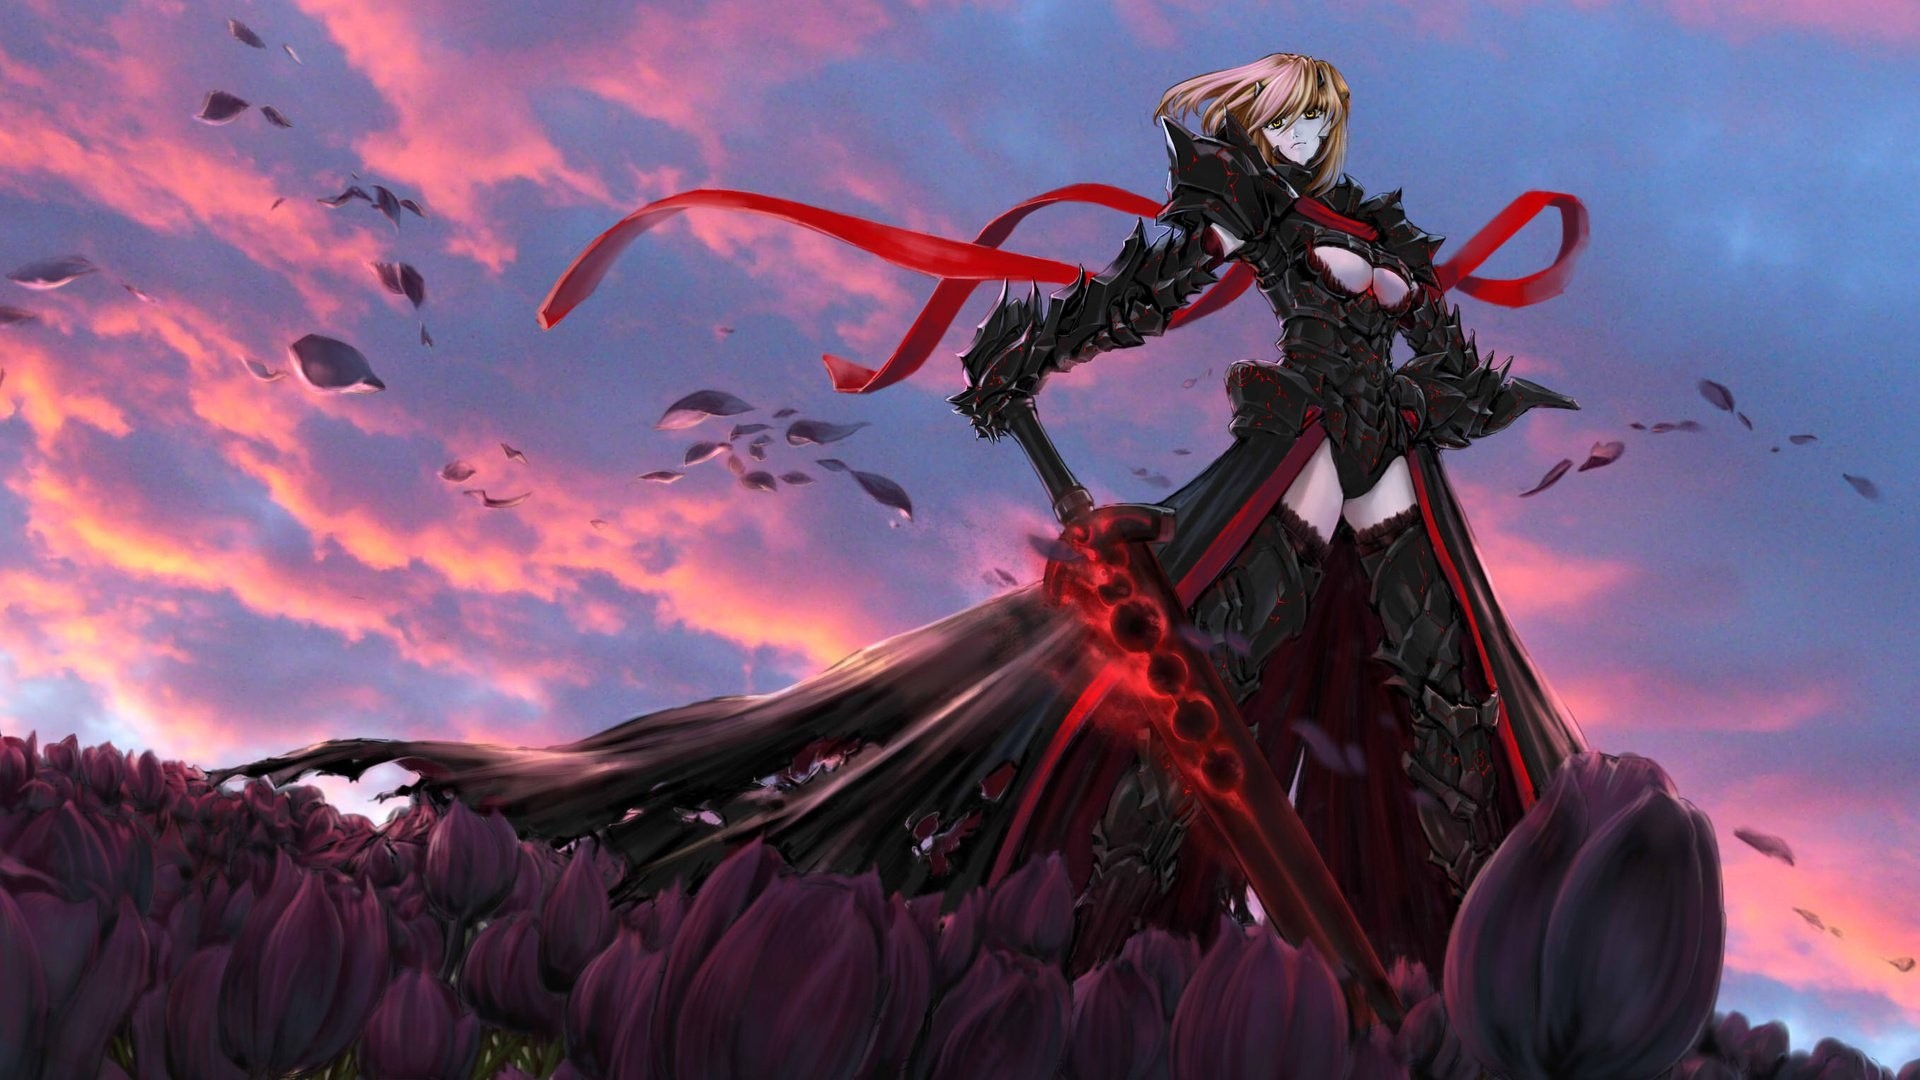 Fate Stay Night Saber Wallpaper Desktop